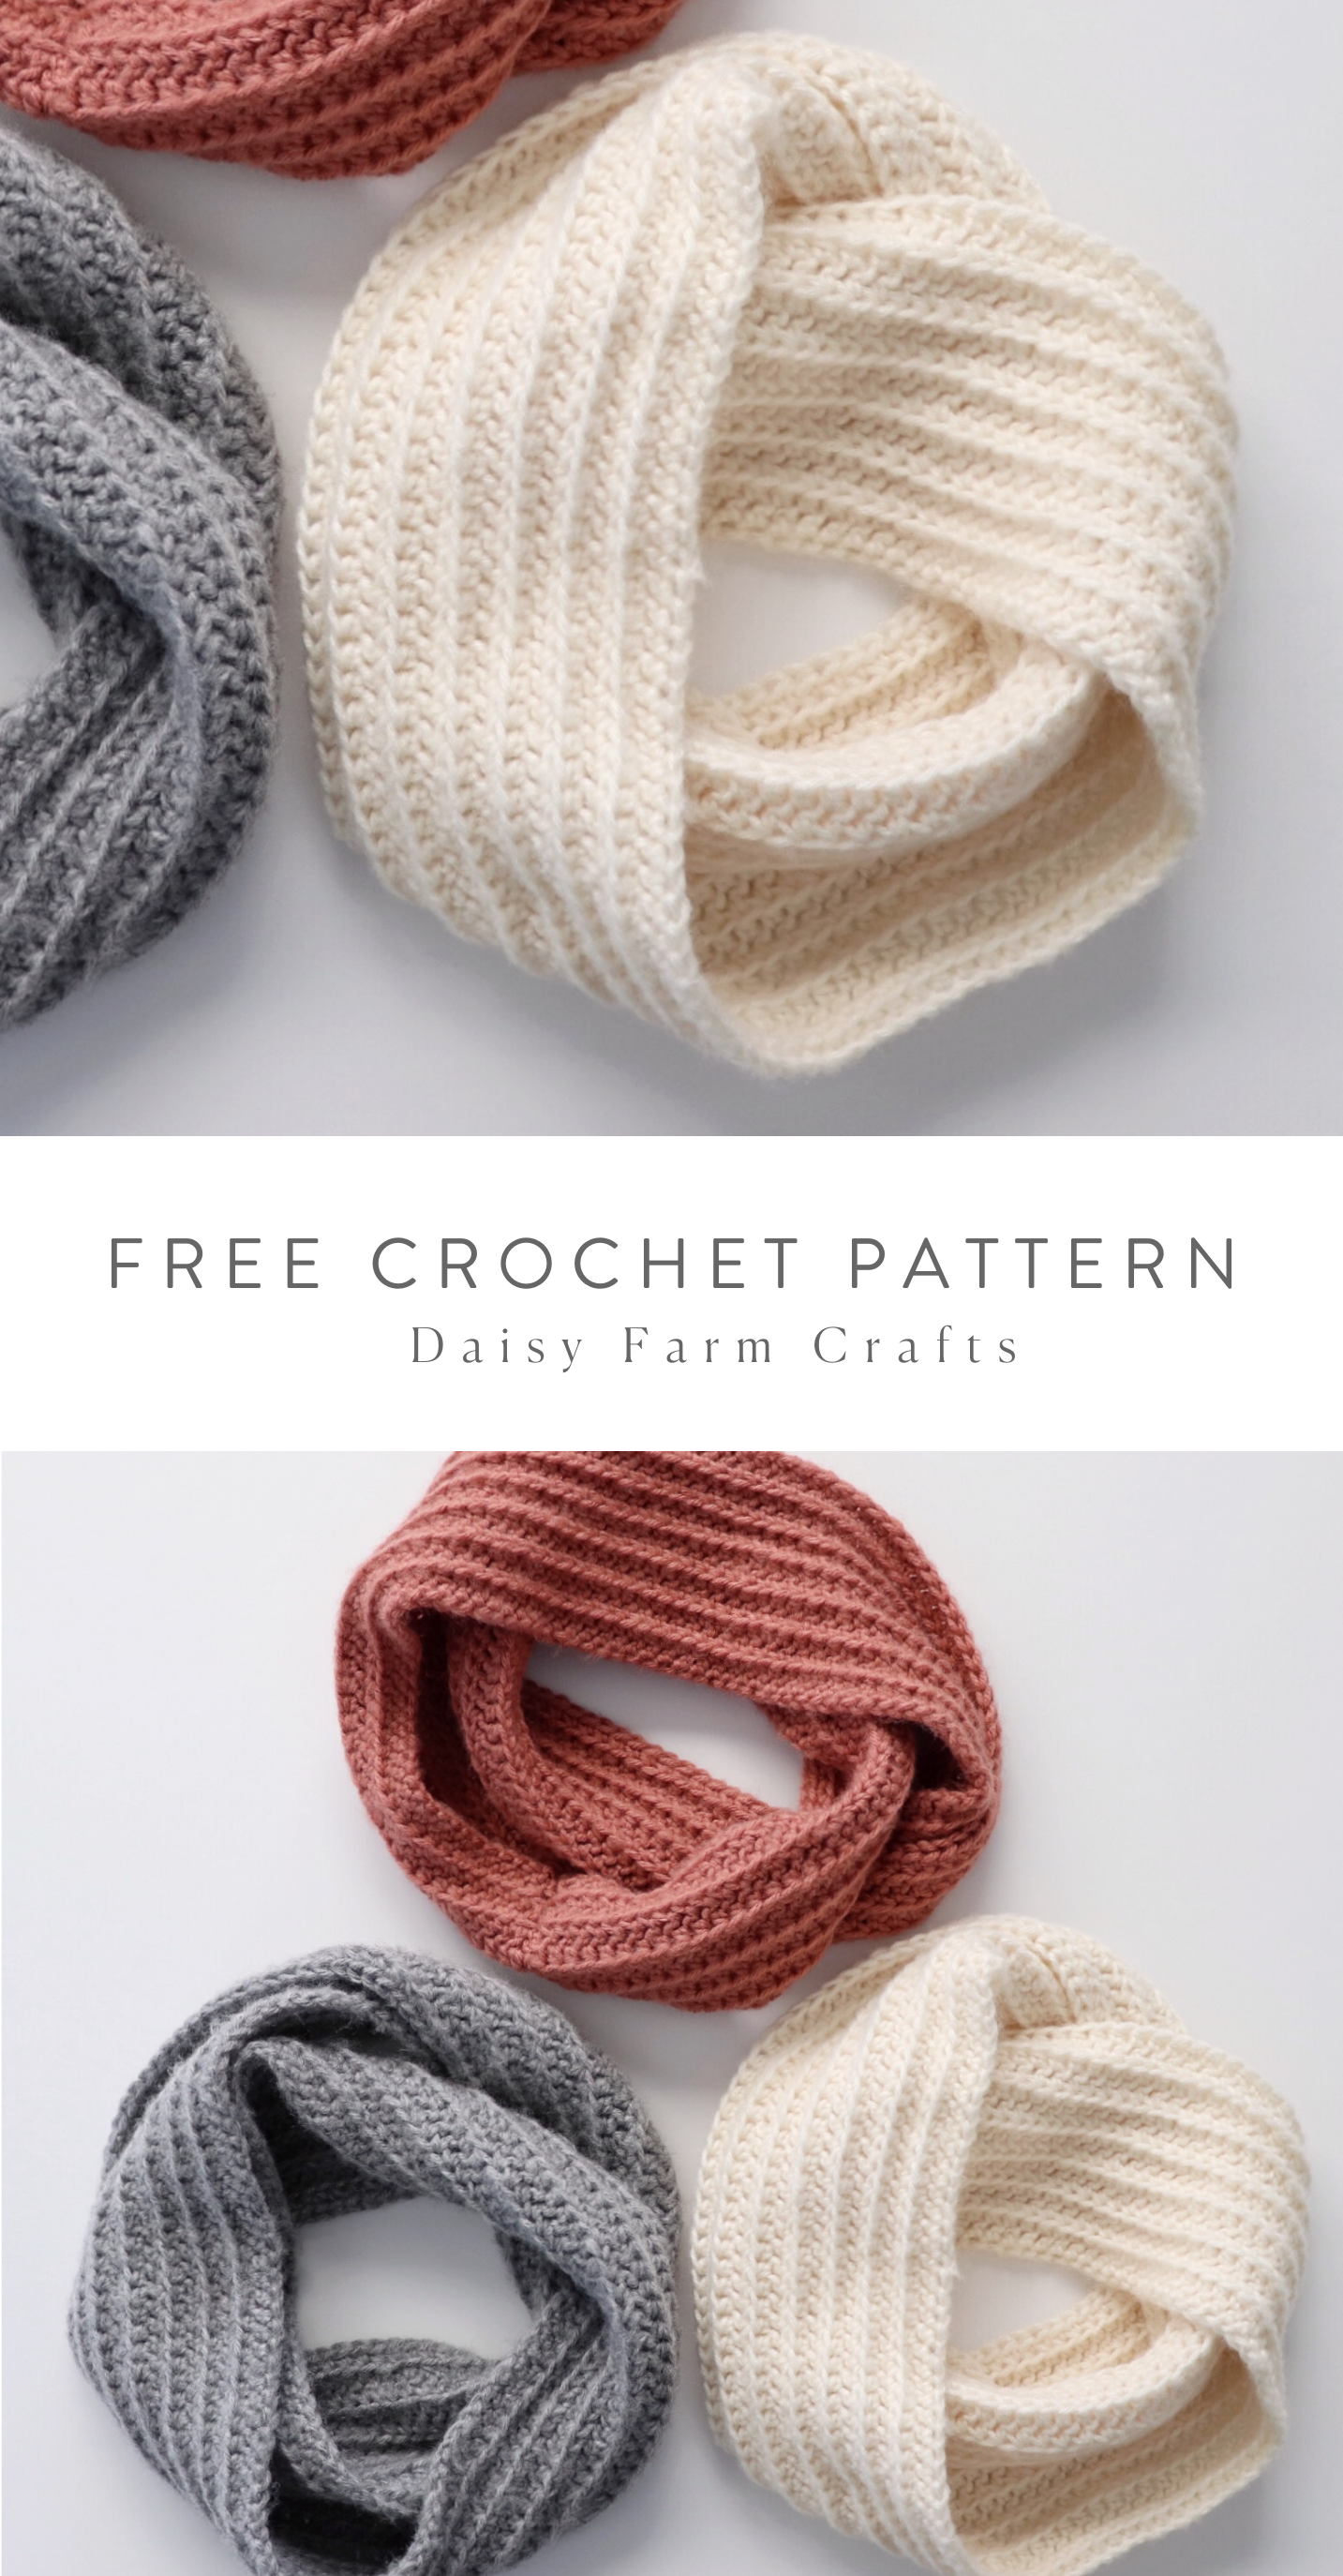 Free Pattern - Simple Crochet Dreamy Infinity Scarf